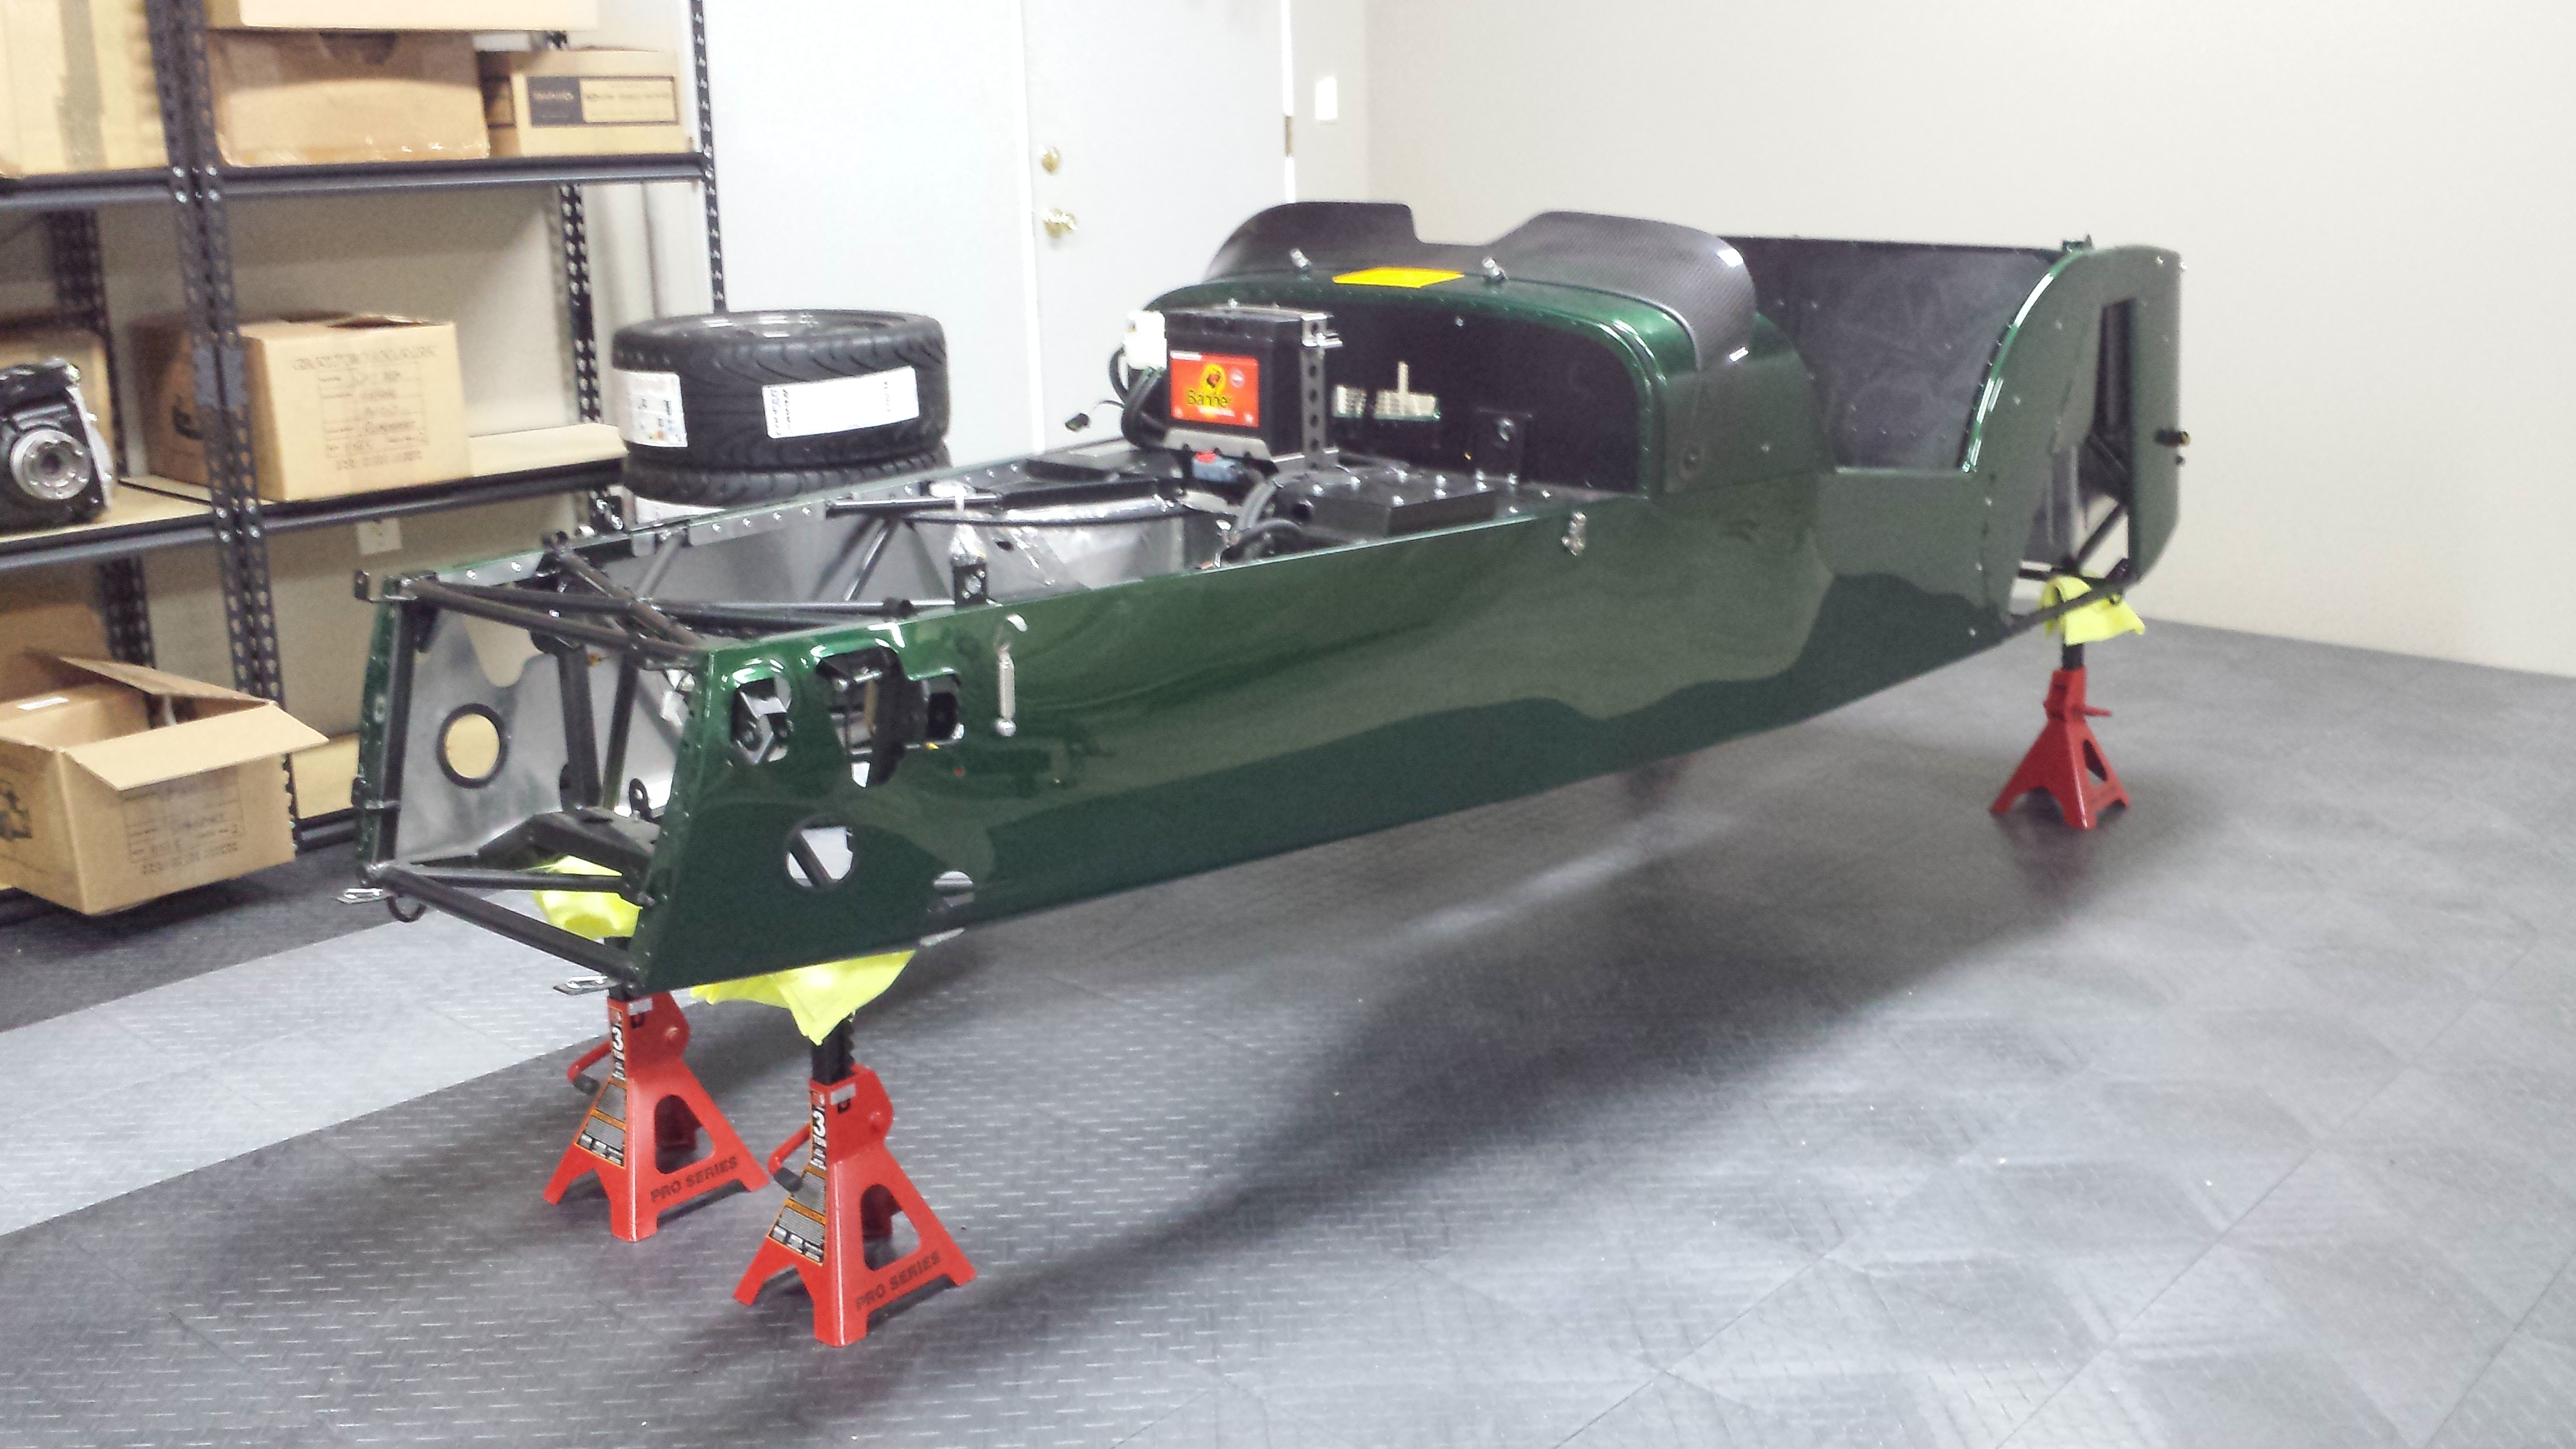 Green chassis sitting empty